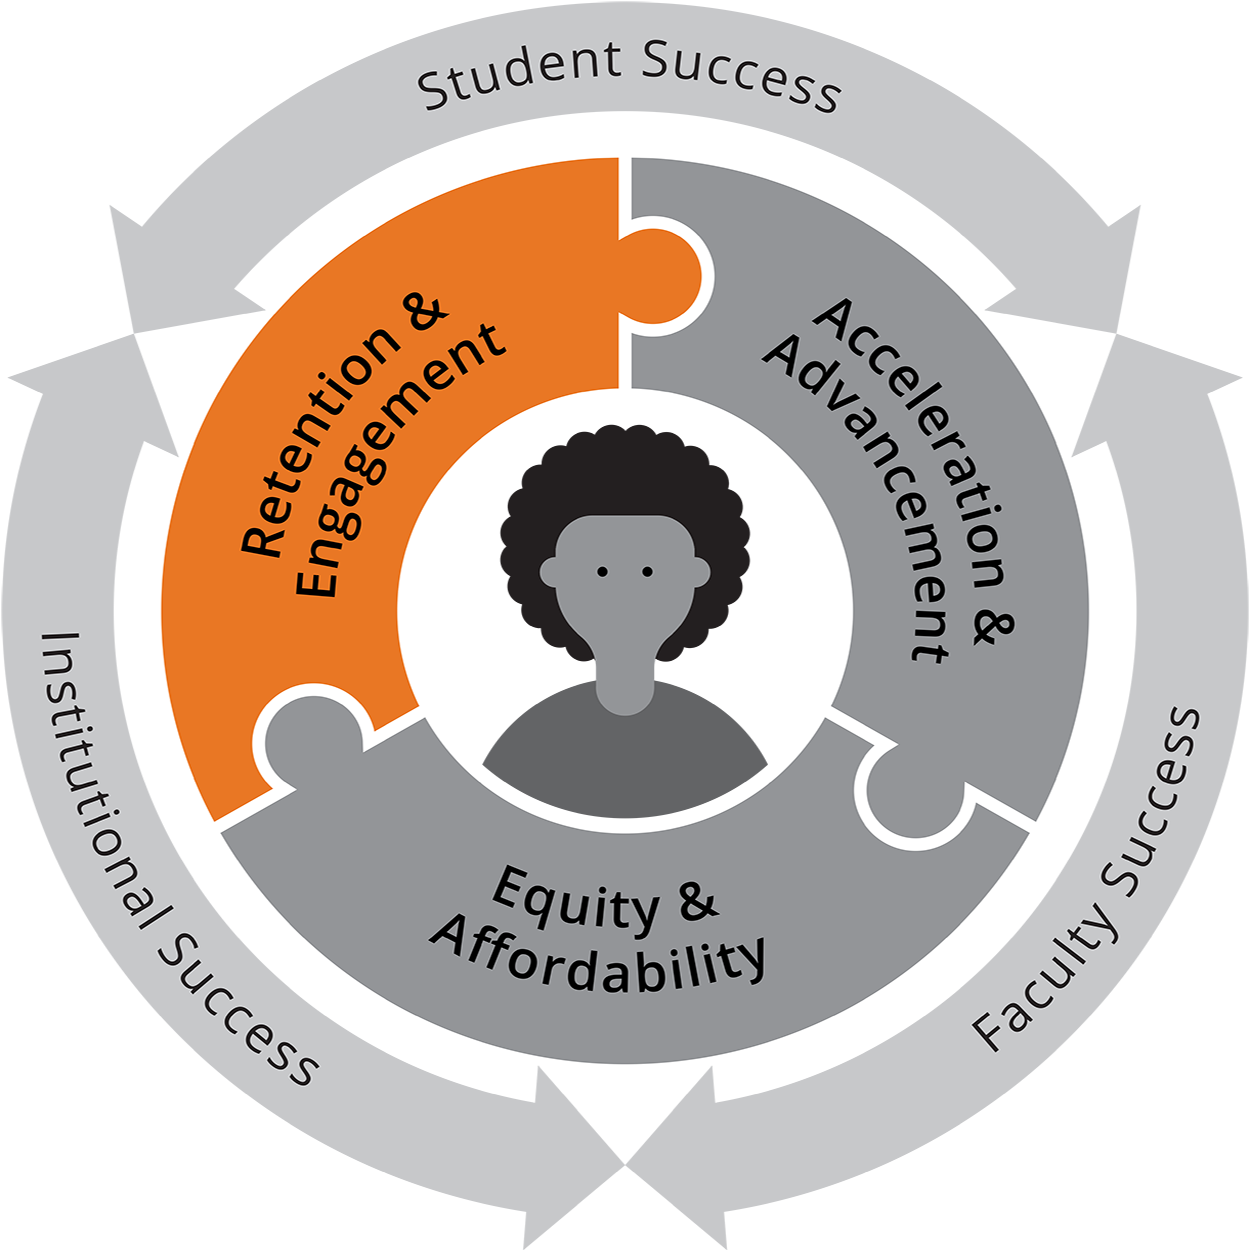 "Gray circle graphic with ""Student, Institutional, and Faculty Success"" written on the outer ring. The middle ring is three connecting puzzle pieces that read: Retention & Engagnement, Acceleration & Advancement, and Equity & Affordability. In the center is an image of a student. Retententon & Engagement piece stands out in orange."